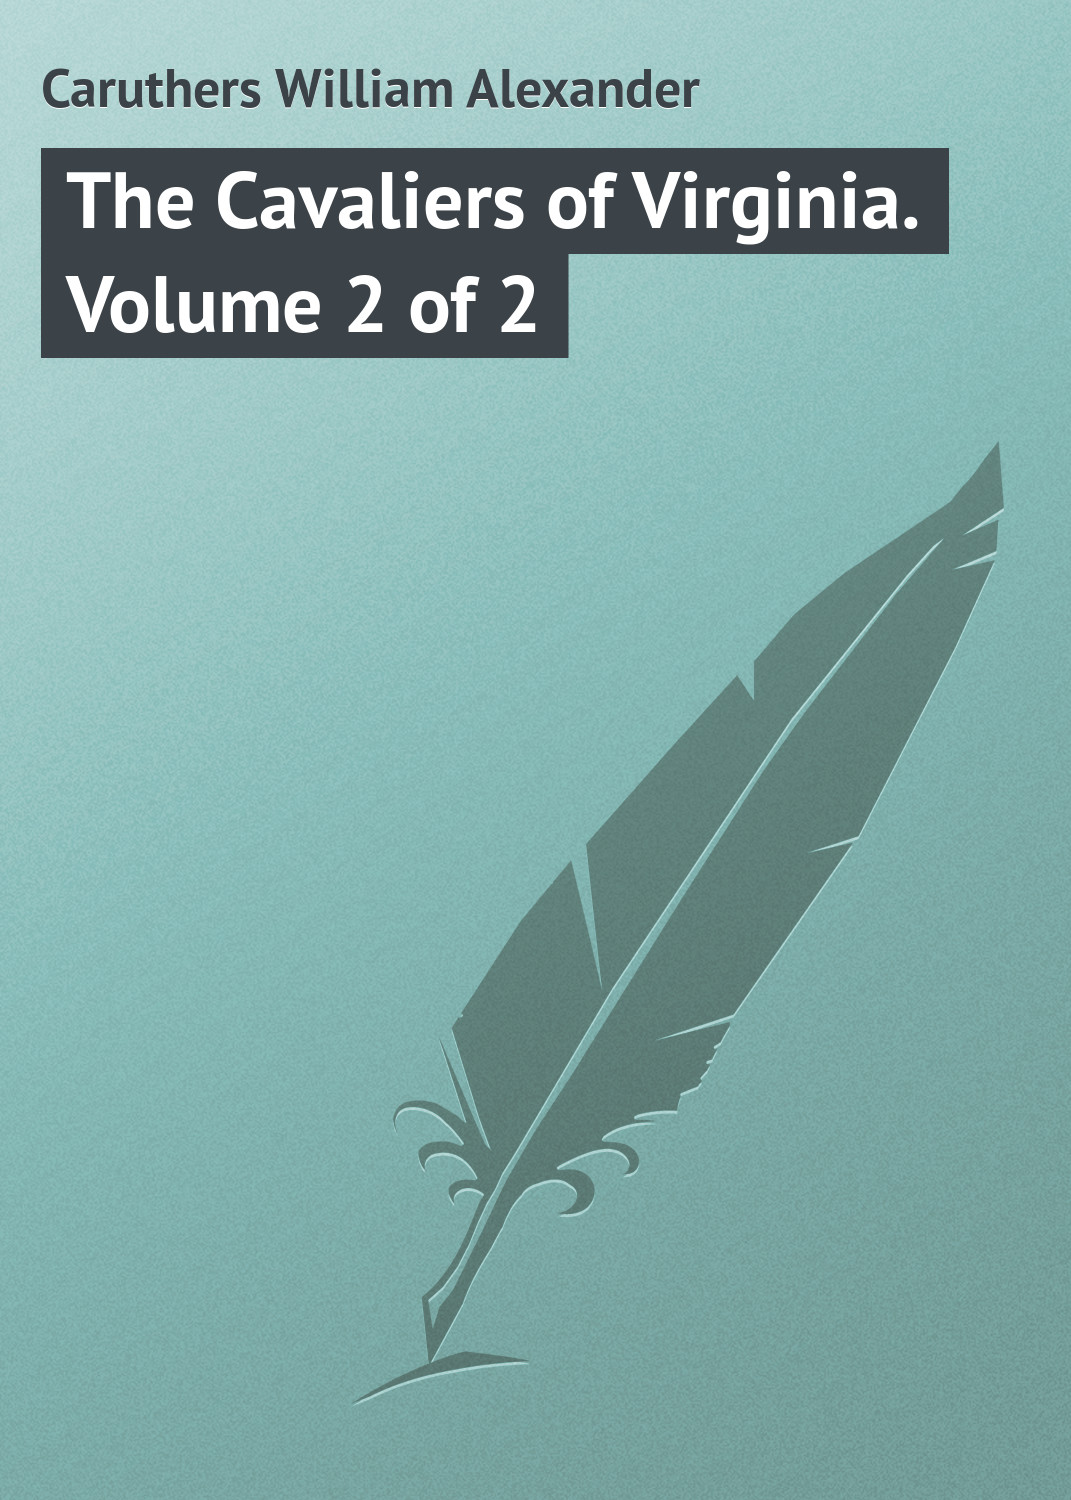 Caruthers William Alexander The Cavaliers of Virginia. Volume 2 of 2 charmed volume 2